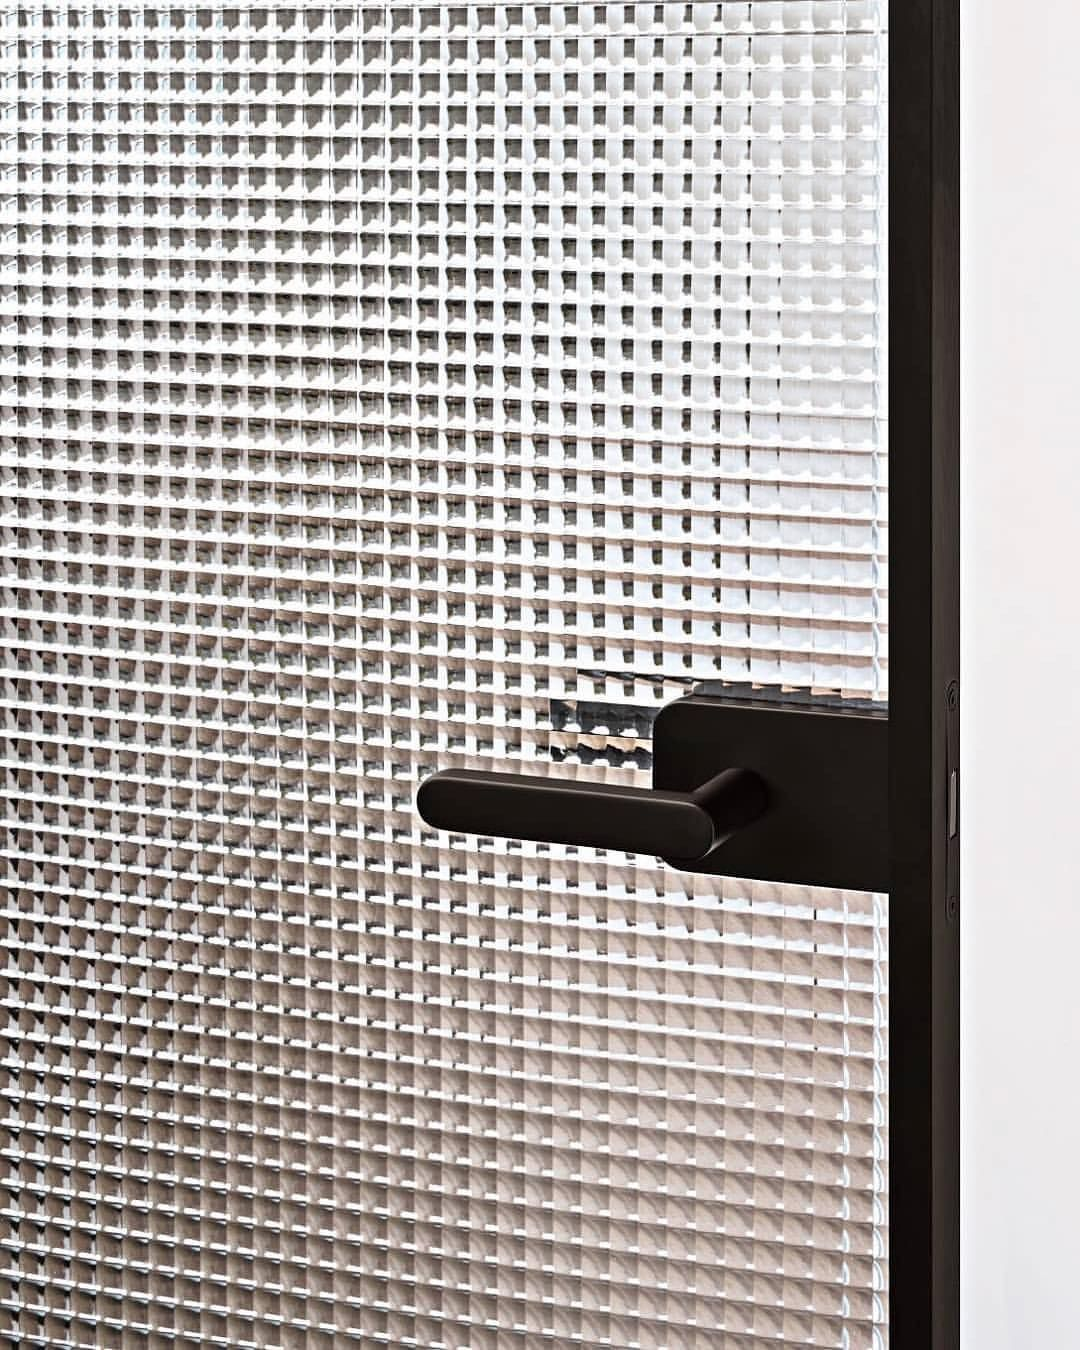 Sherazade Door Collection By Pierolissoni For Glasitalia Swing Pocket Or Slide Door With Our Without Fra Doors Glass Furniture Apartment Decor Inspiration